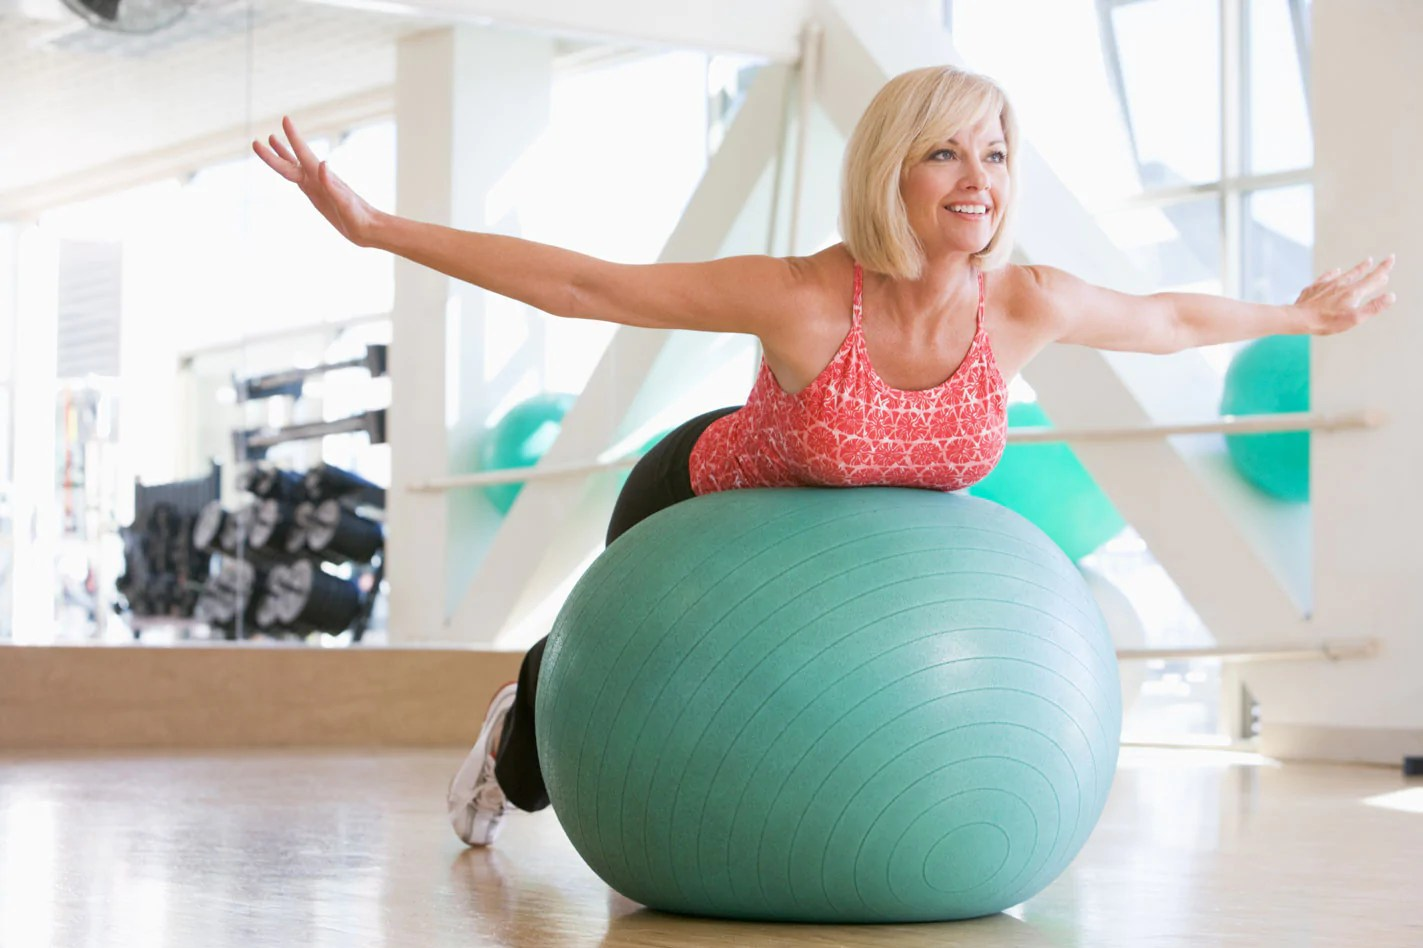 Balance Ball Therapy 4 Exercises For Back And Knee